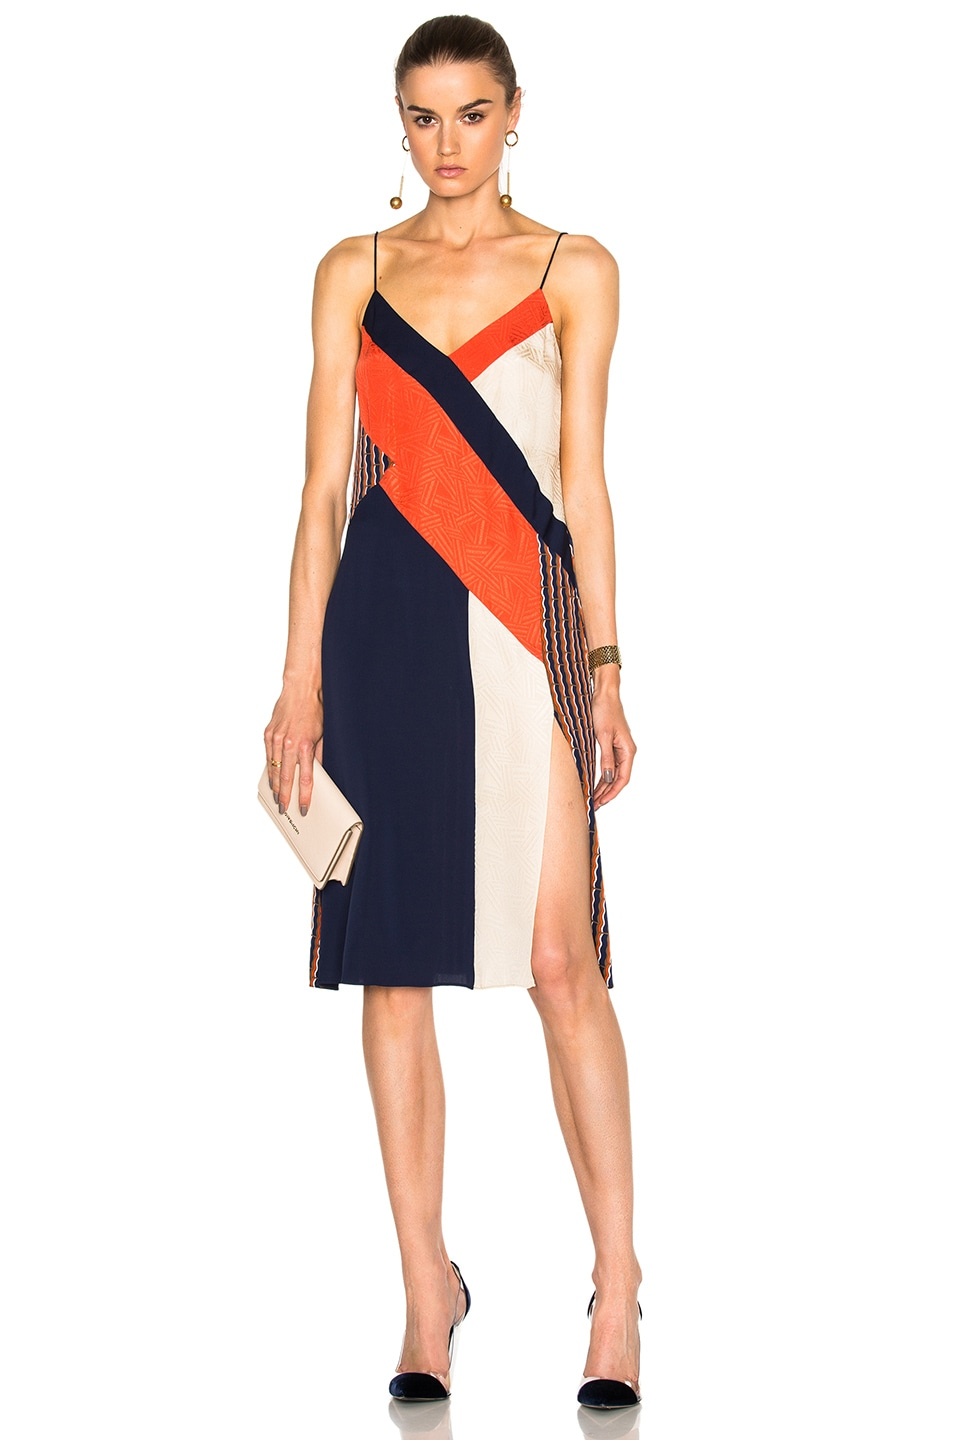 Diane von Furstenberg Frederica Slip Dress in Rick Rack Khaki ...